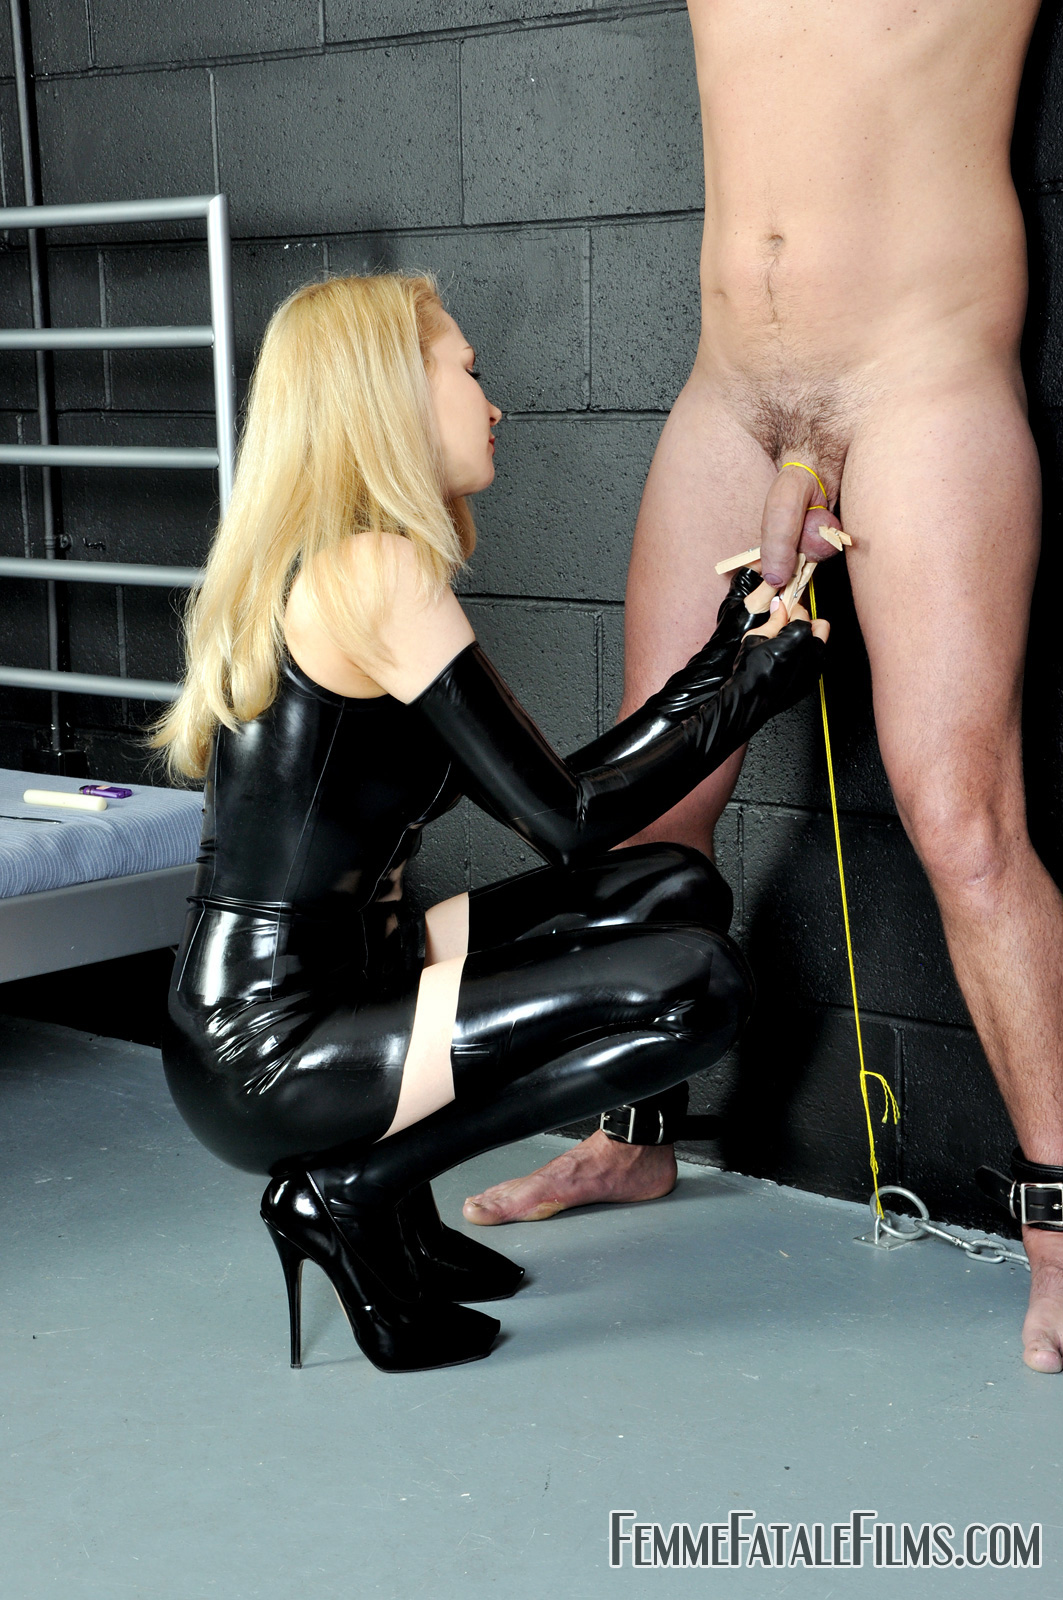 Blonde milf in boots gives cock and ball torture